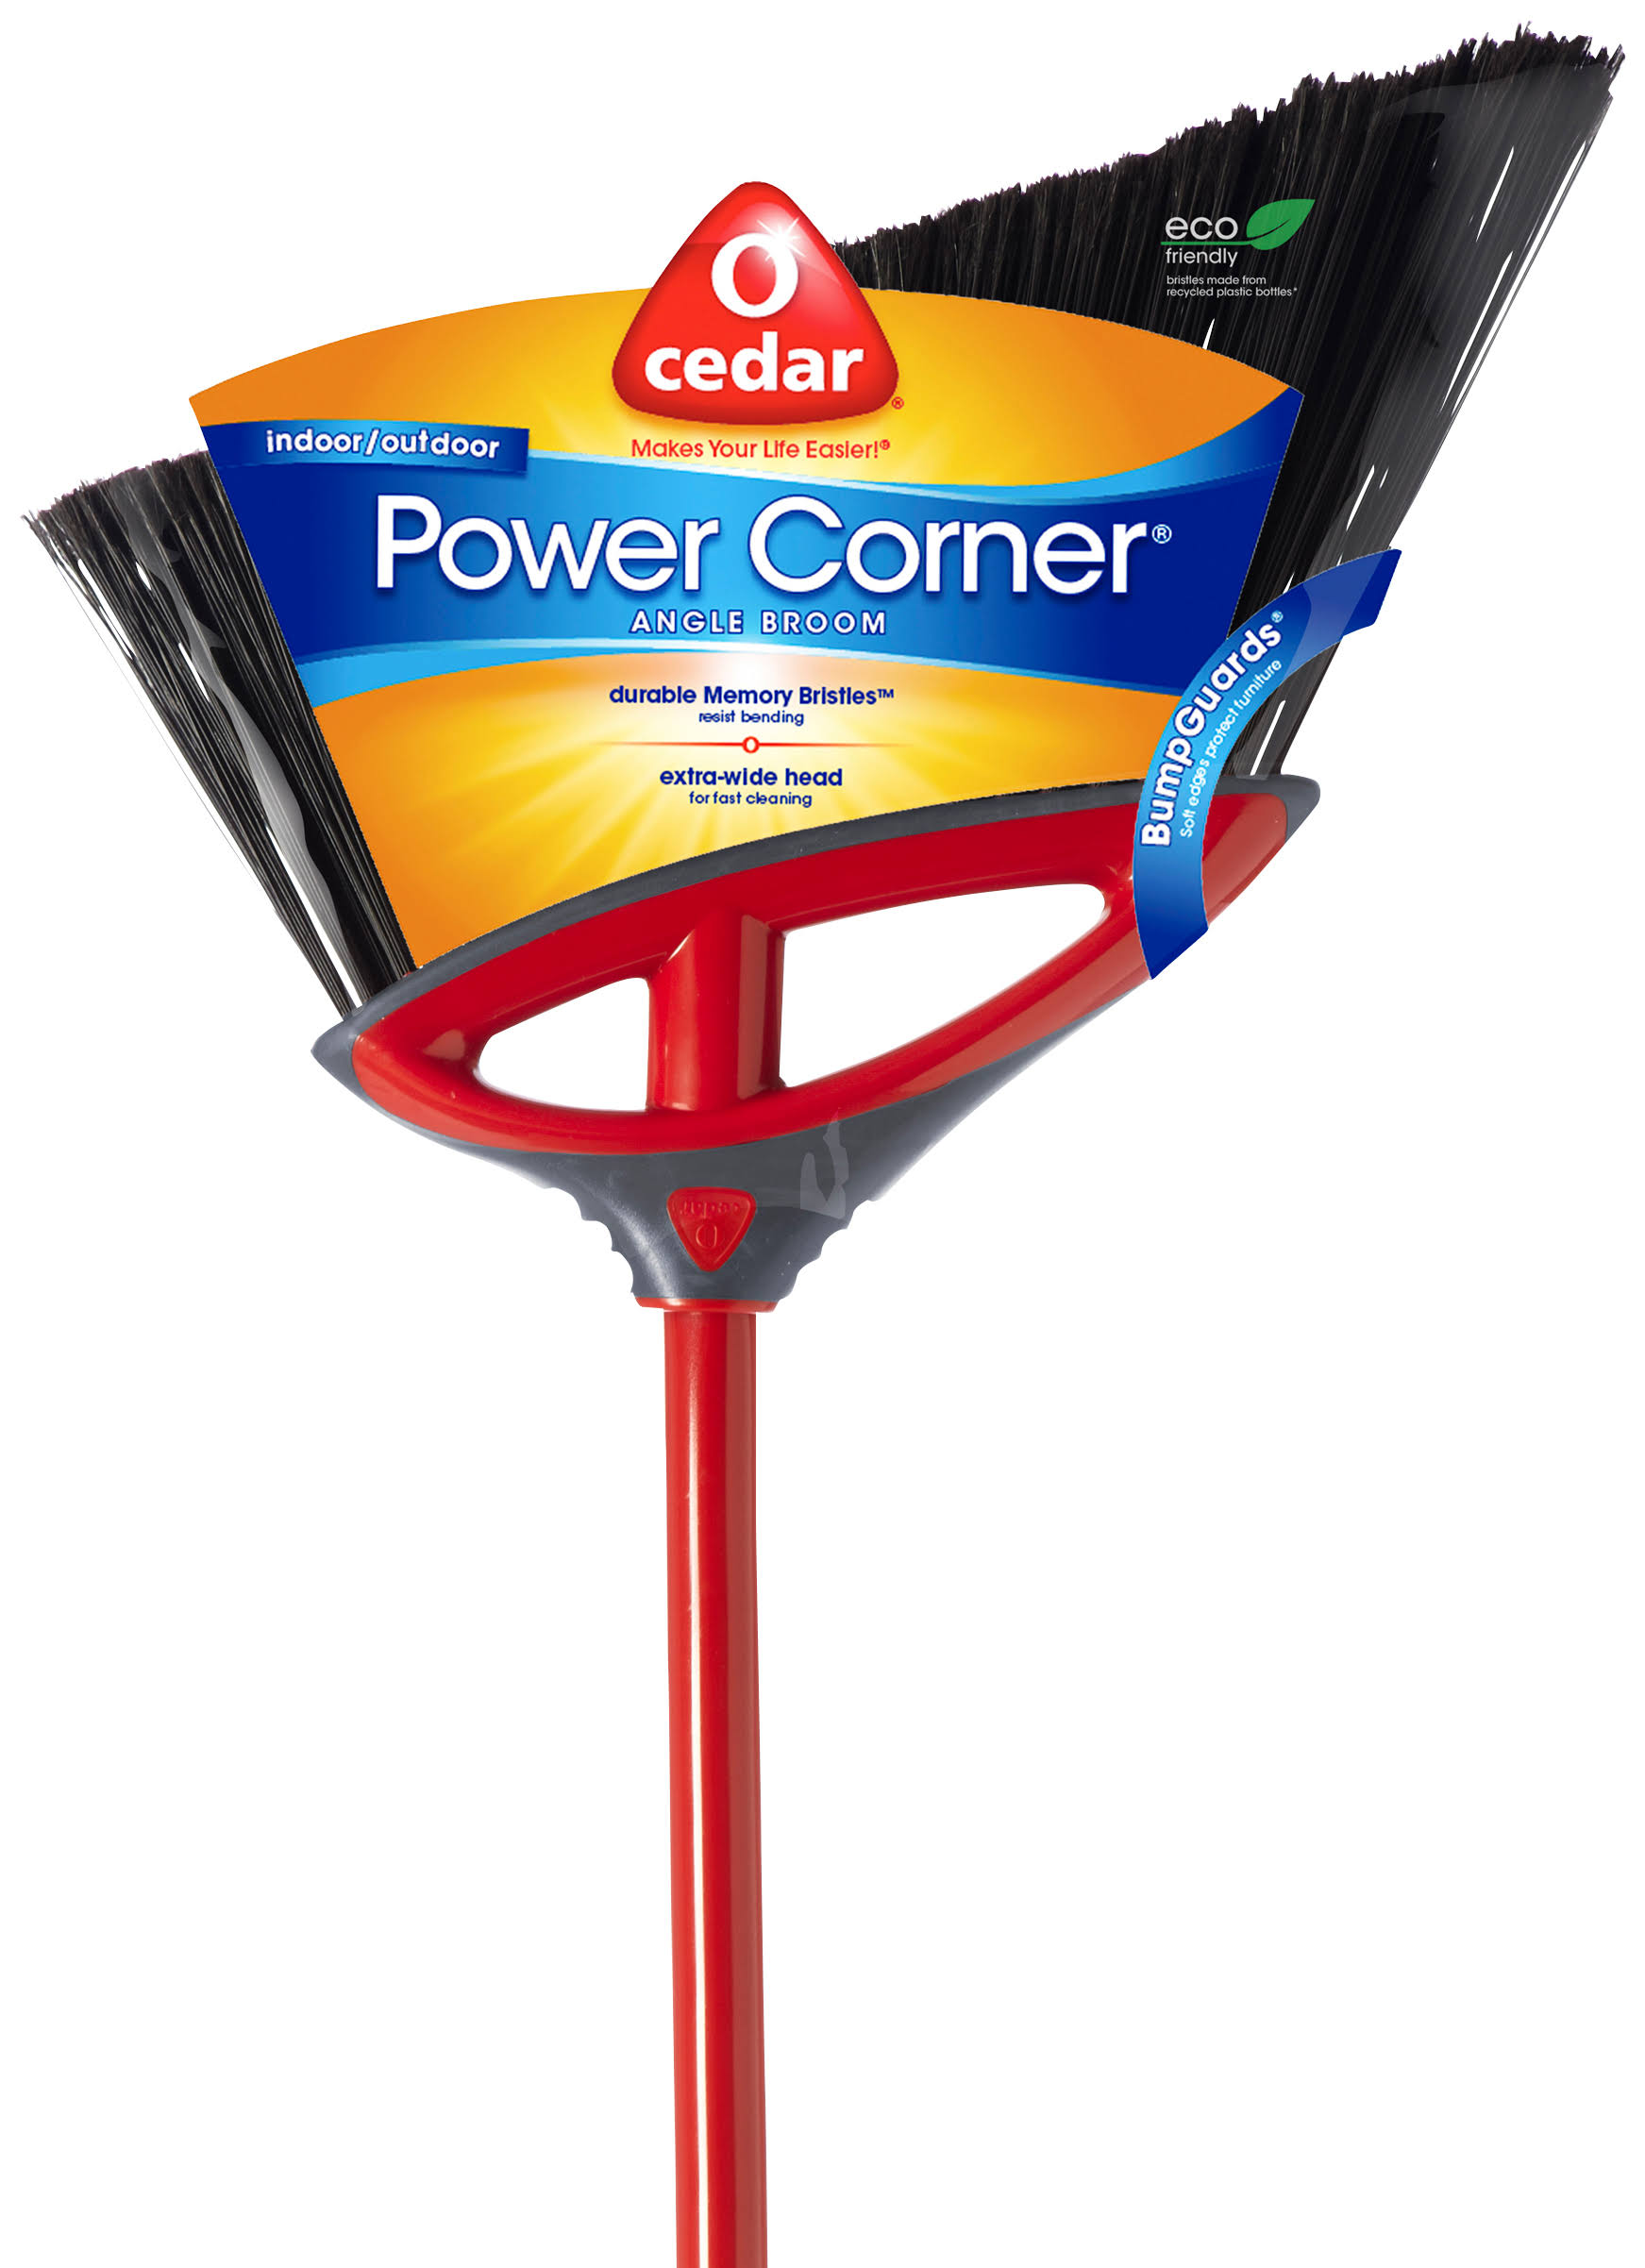 O-Cedar Power Corner Angle Broom - Large